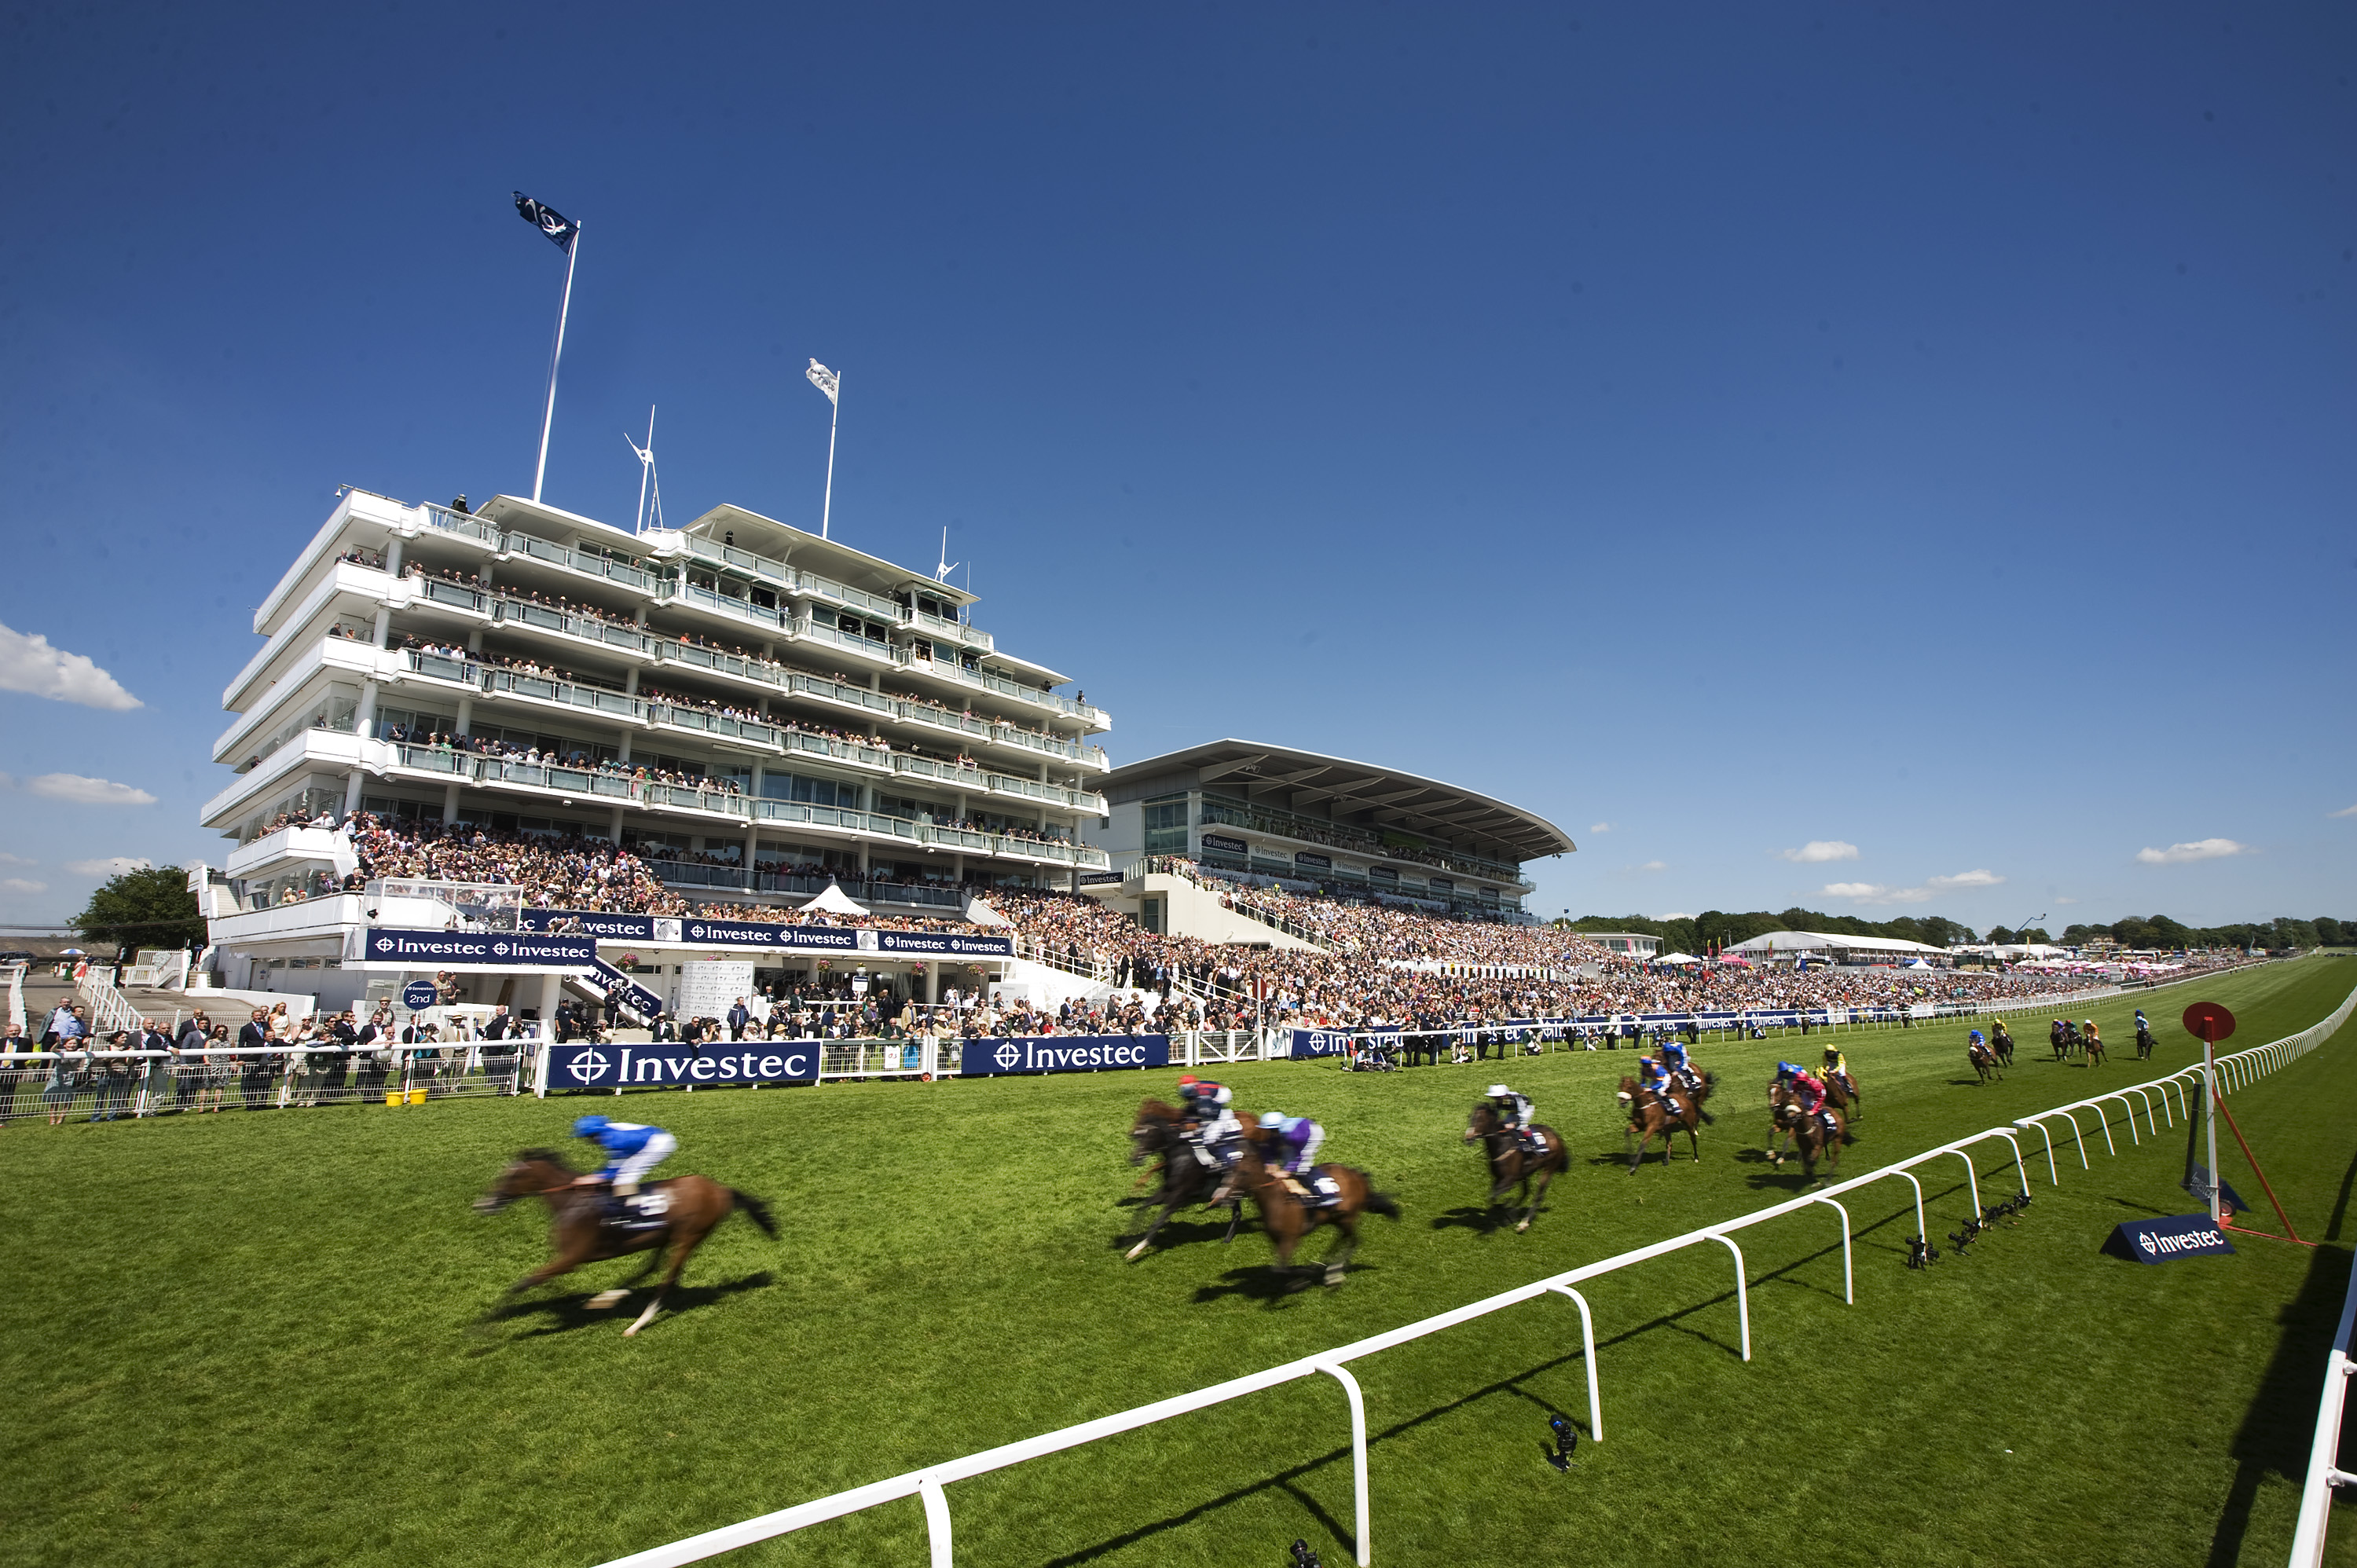 Epsom Downs has been raced at in five different centuries